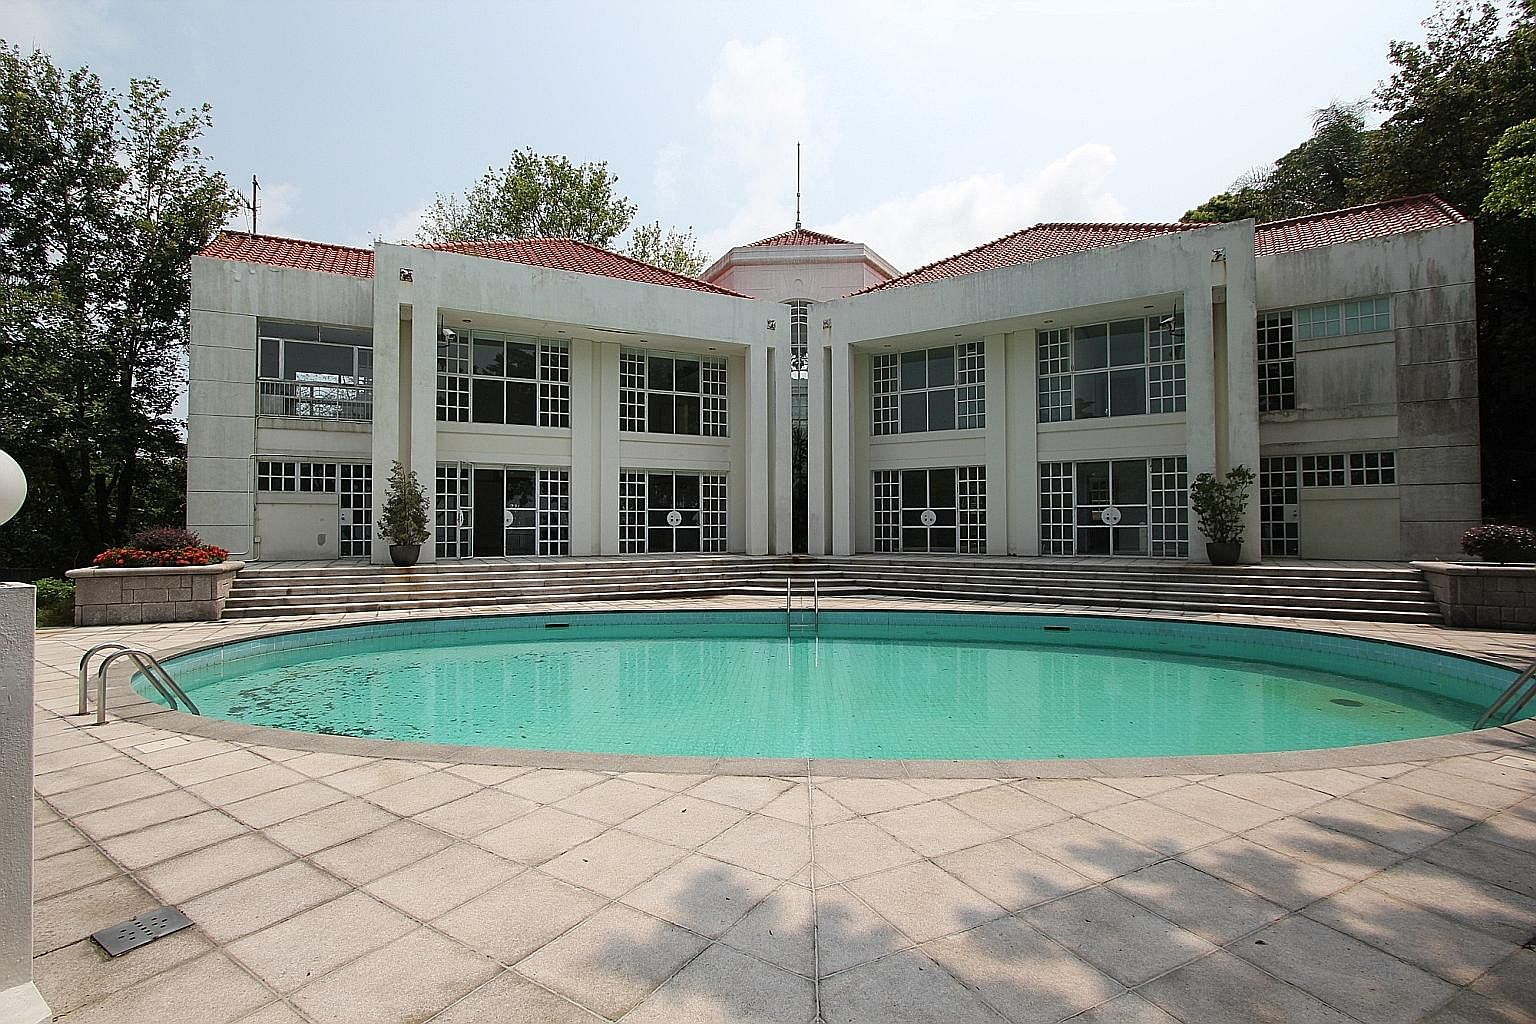 24 Middle Gap Road sits on 16,330 sq ft of land in Hong Kong's Peak neighbourhood and comes with a swimming pool, parking for two cars as well as some dated 1990s decor. While not considered palatial, it does offer an exclusive address and a rare opp